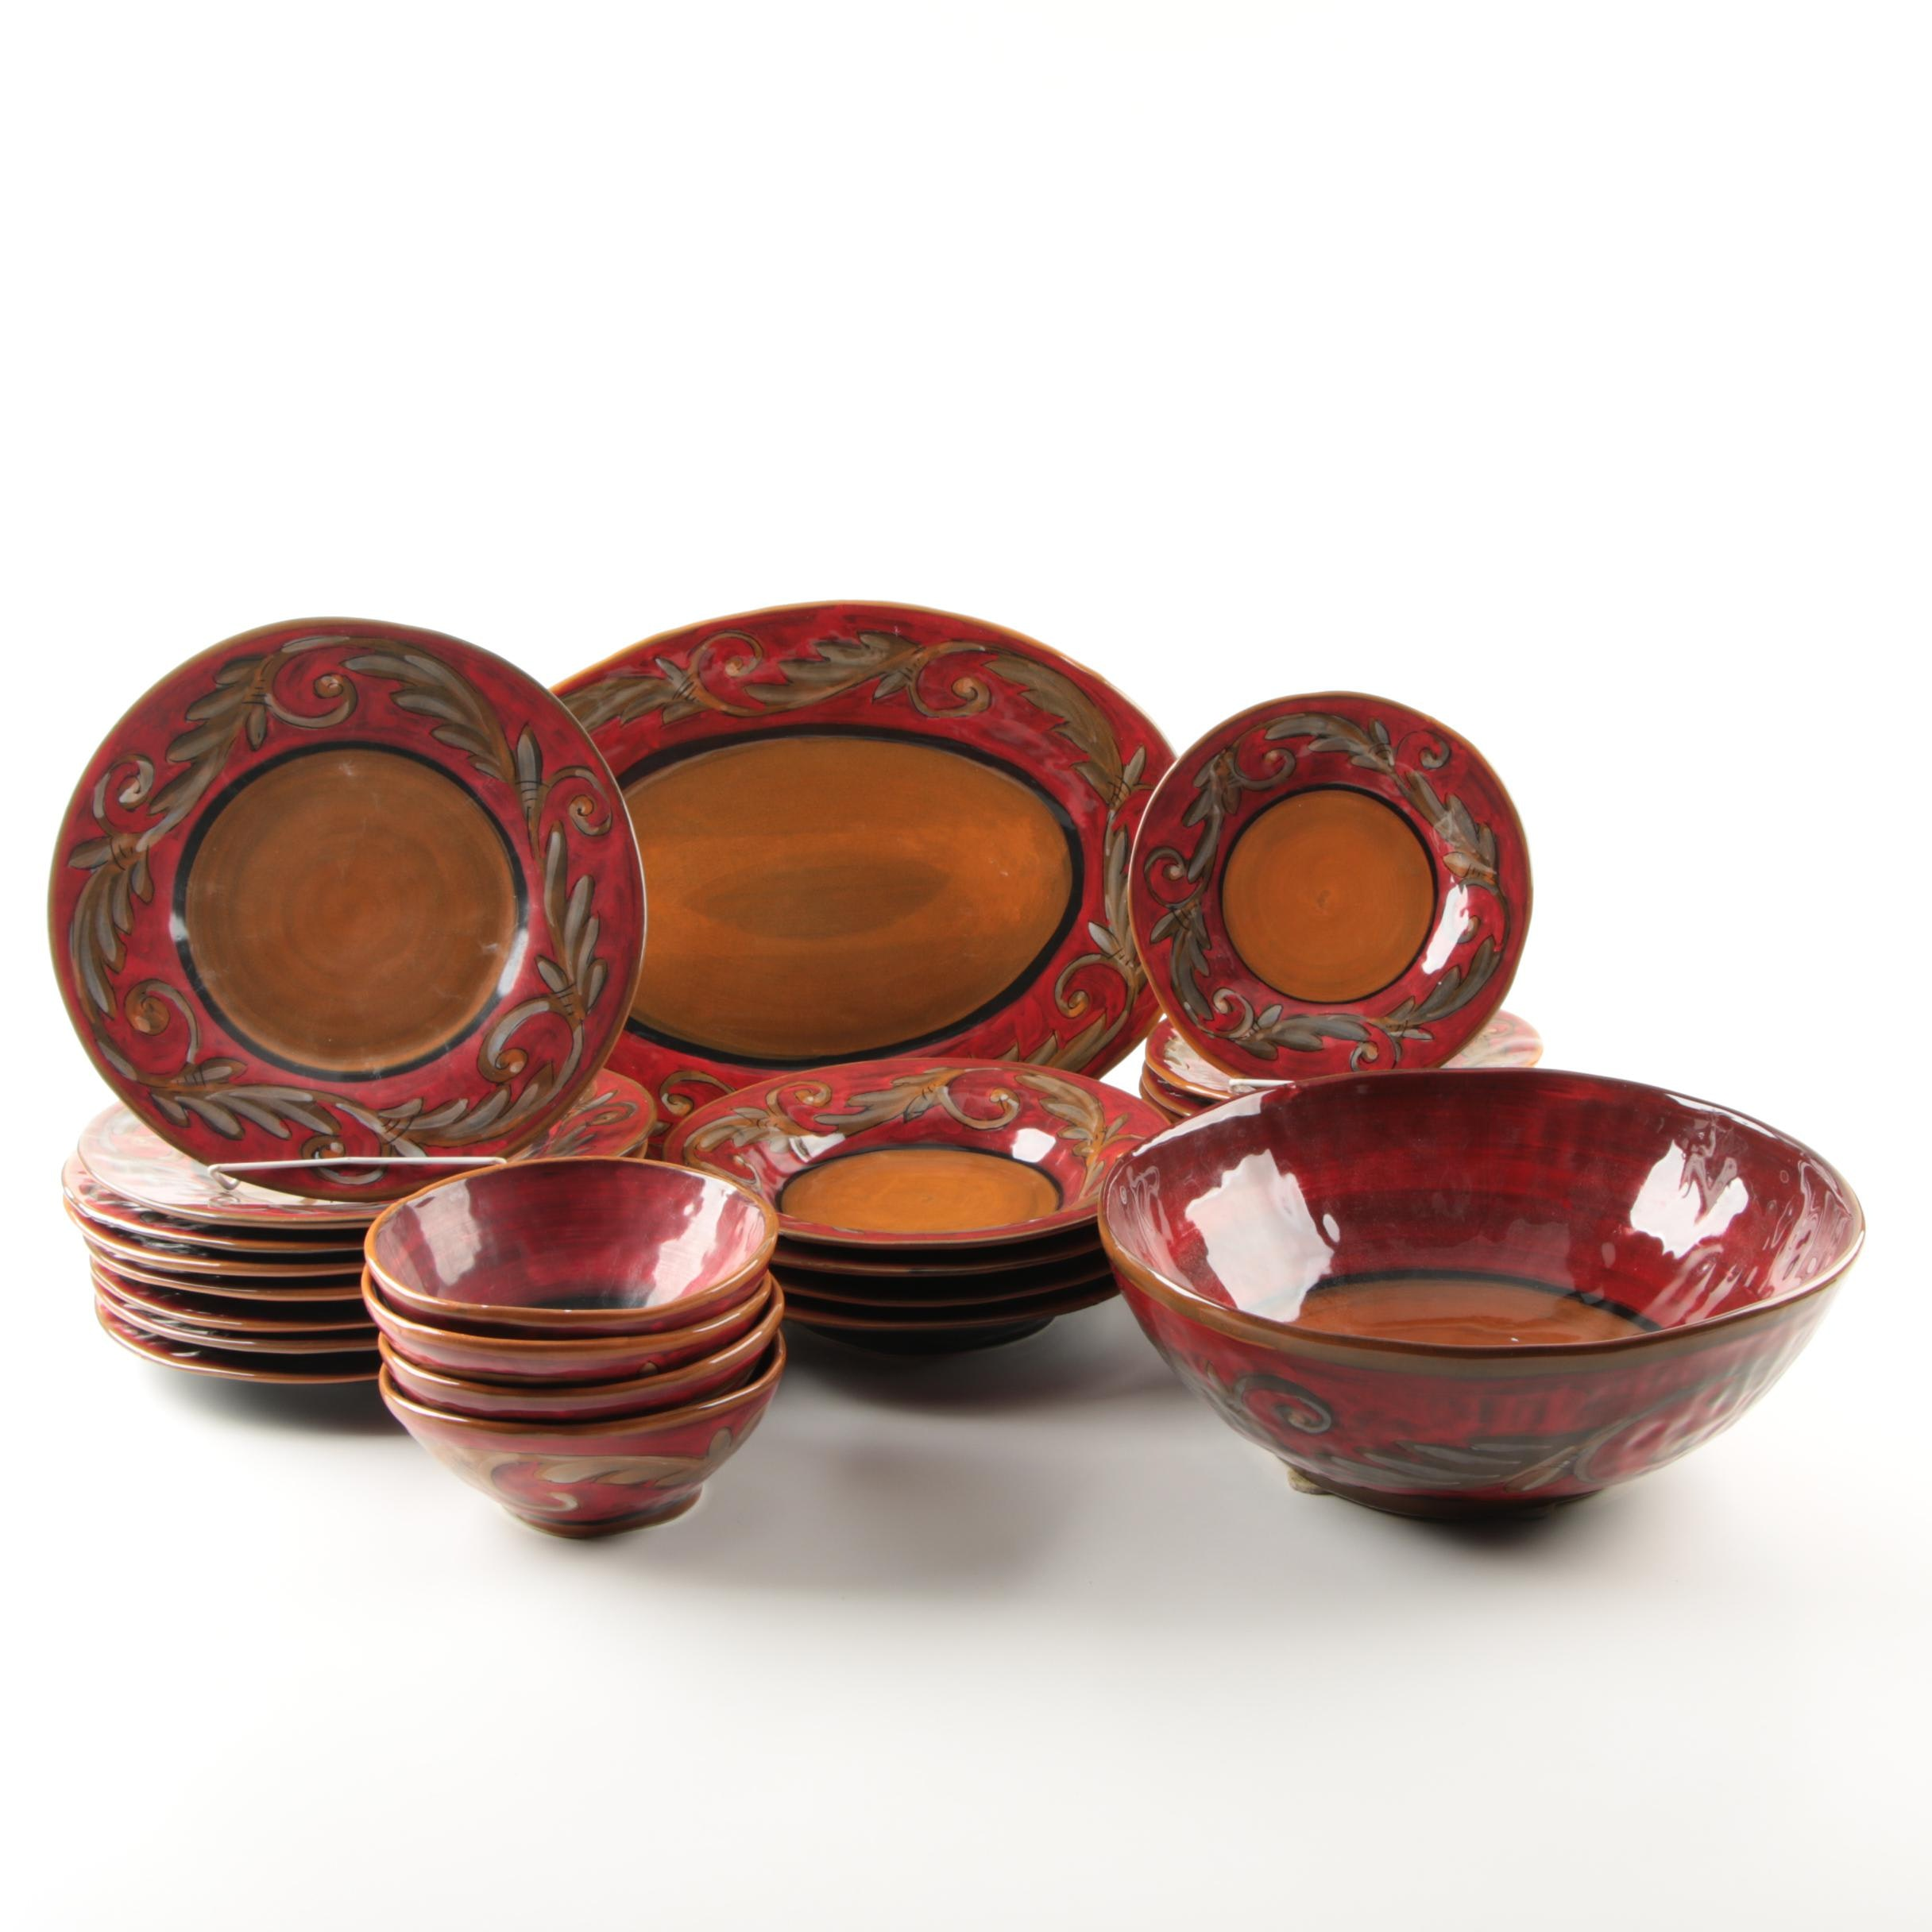 Italian Dinnerware by Rale in Red with Leaf Band ...  sc 1 st  EBTH.com & Italian Dinnerware by Rale in Red with Leaf Band : EBTH